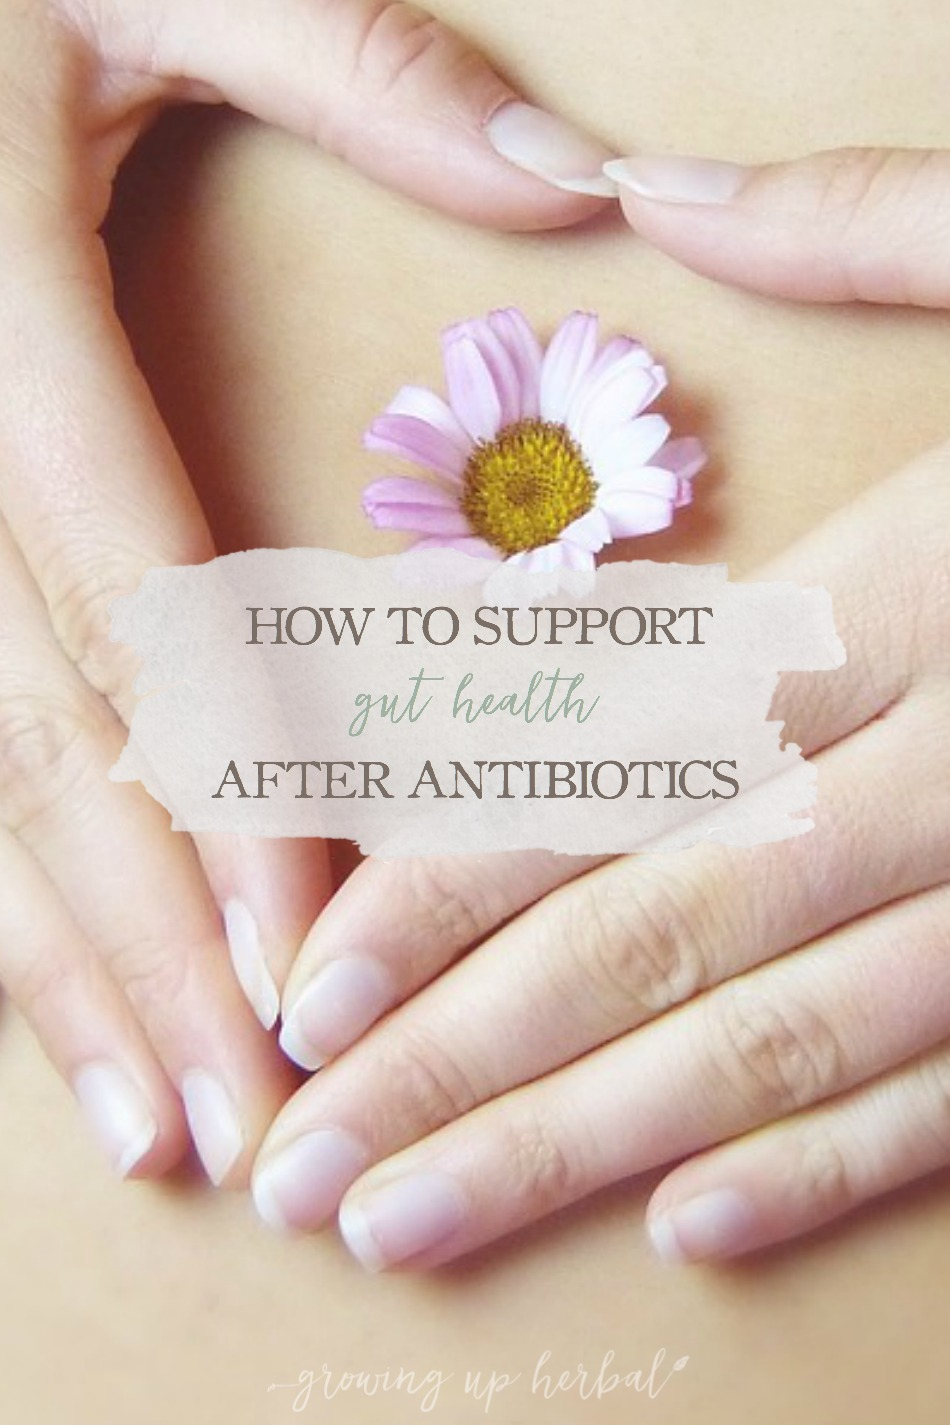 How To Support Gut Health After Antibiotics | Growing Up Herbal | If you're wondering how to support gut health after needing a round or two of antibiotics, this post will explore some of the best options.